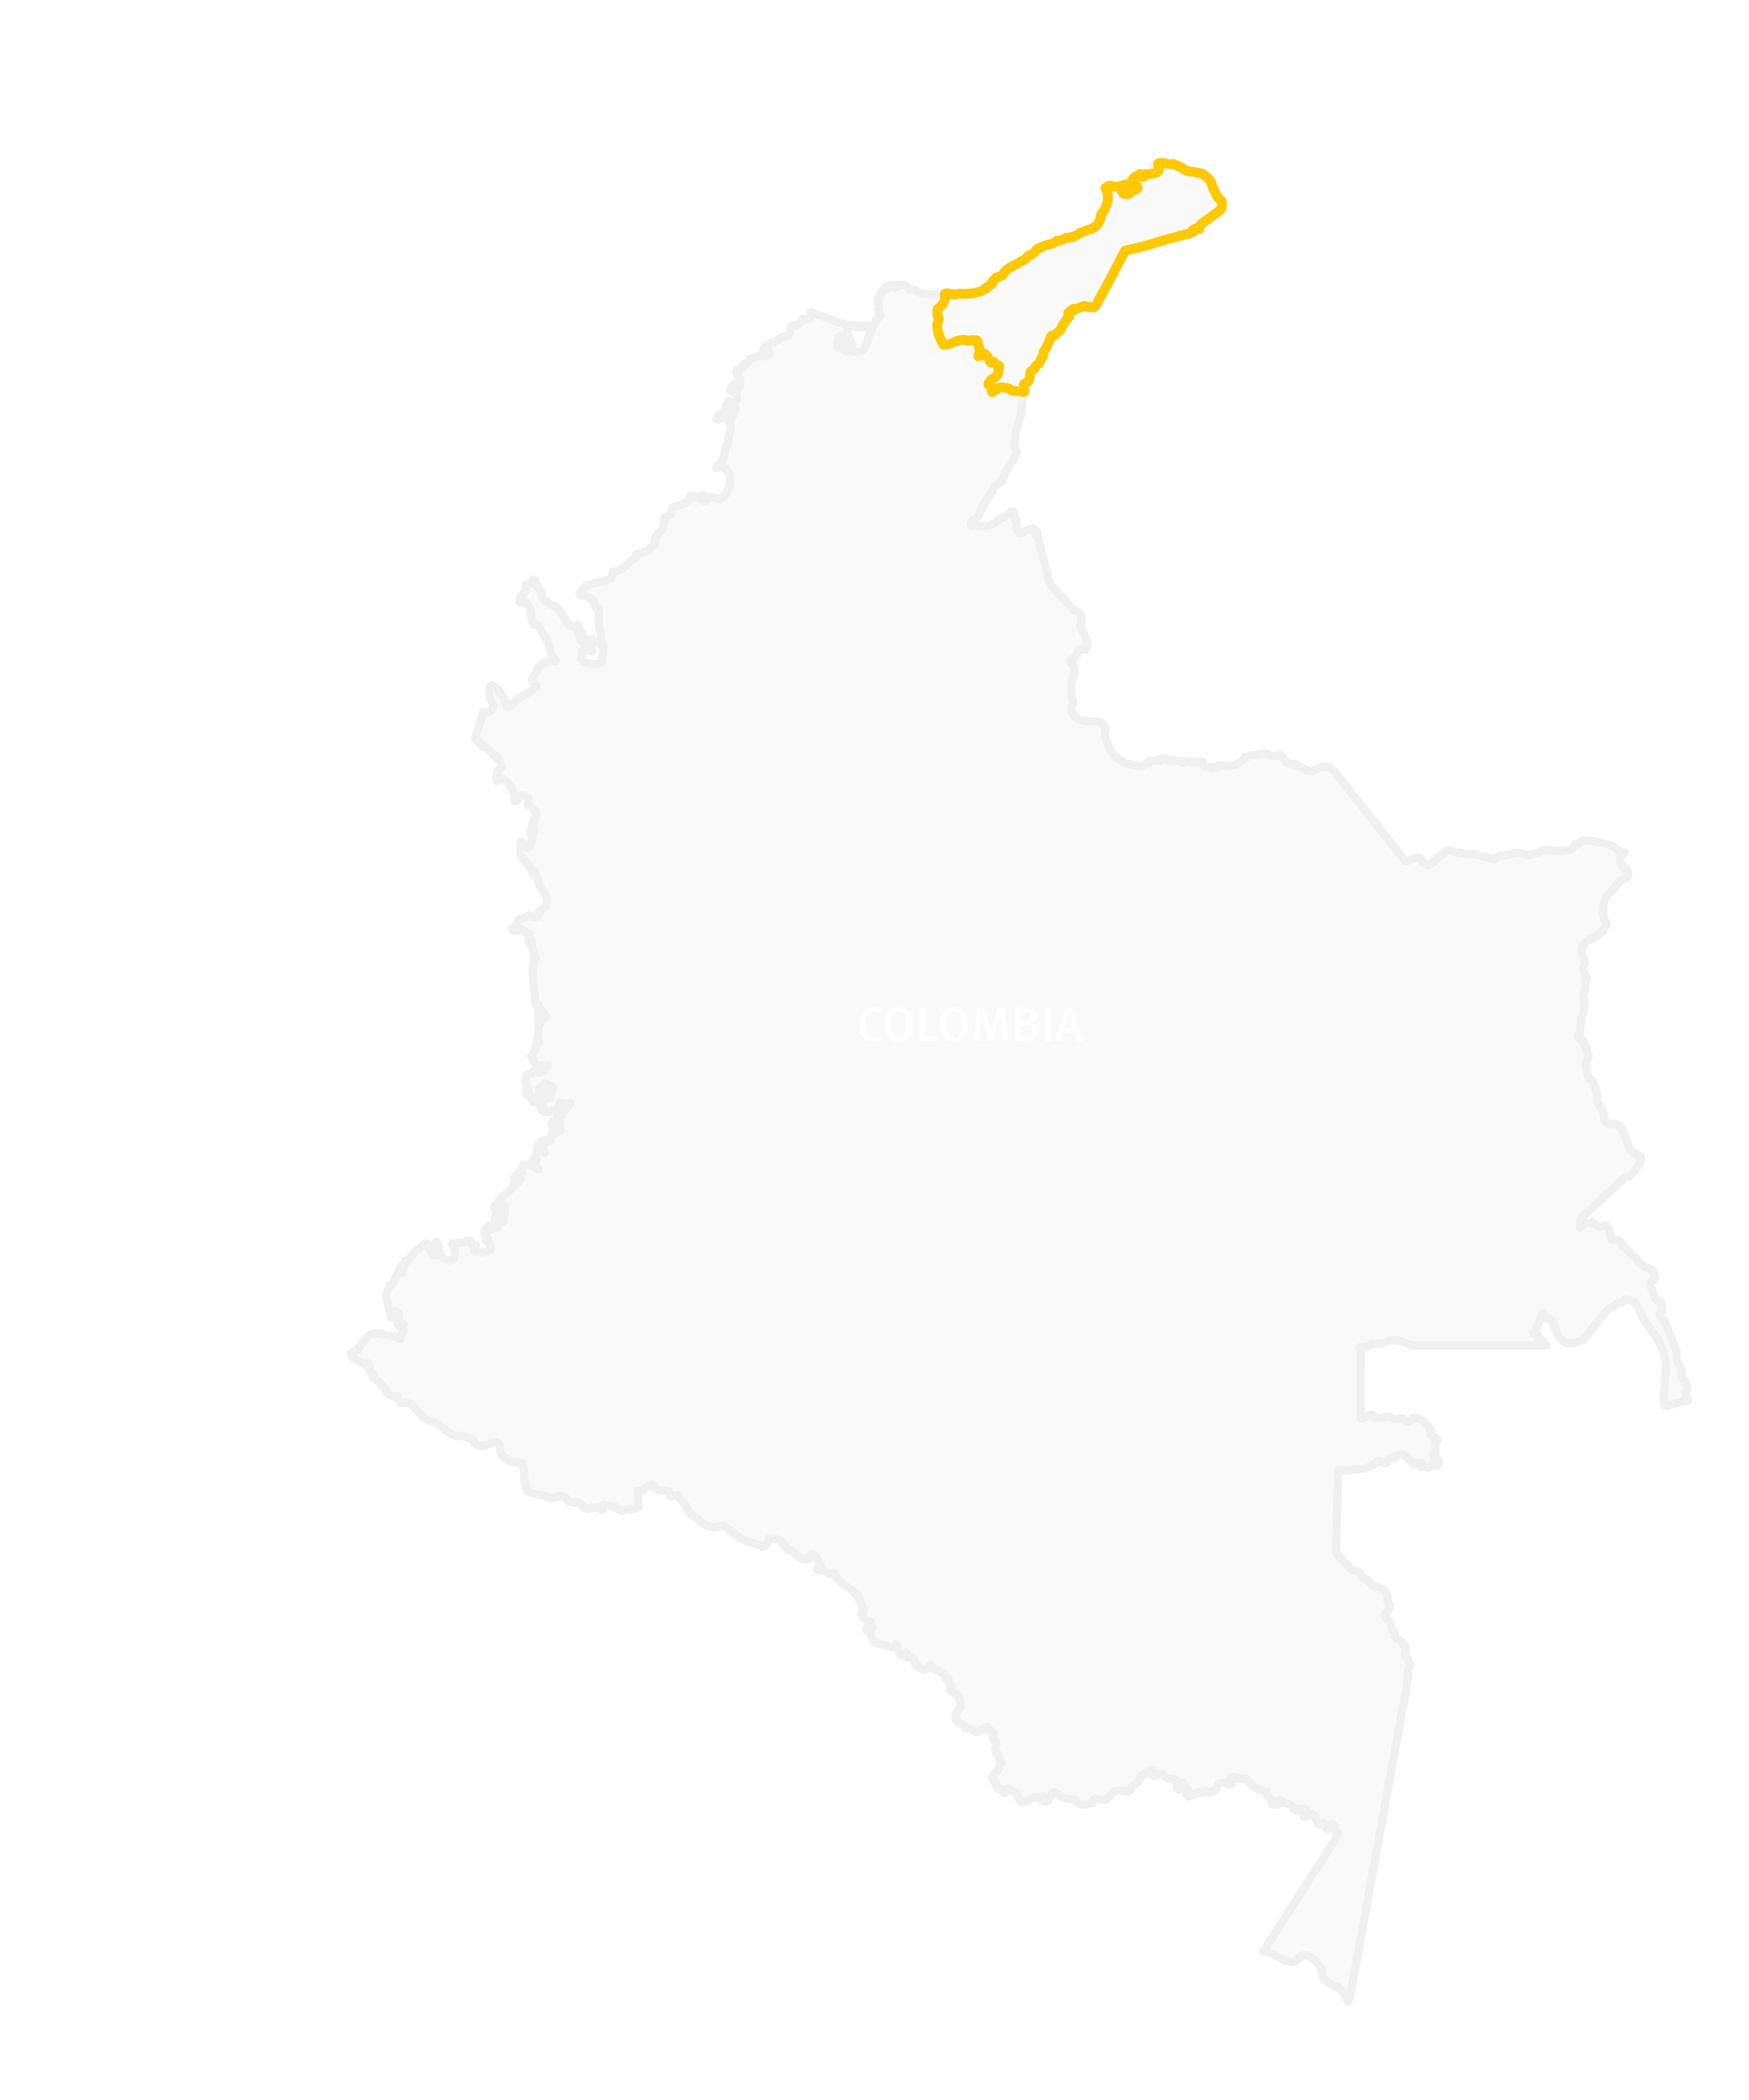 Map of La Guajira